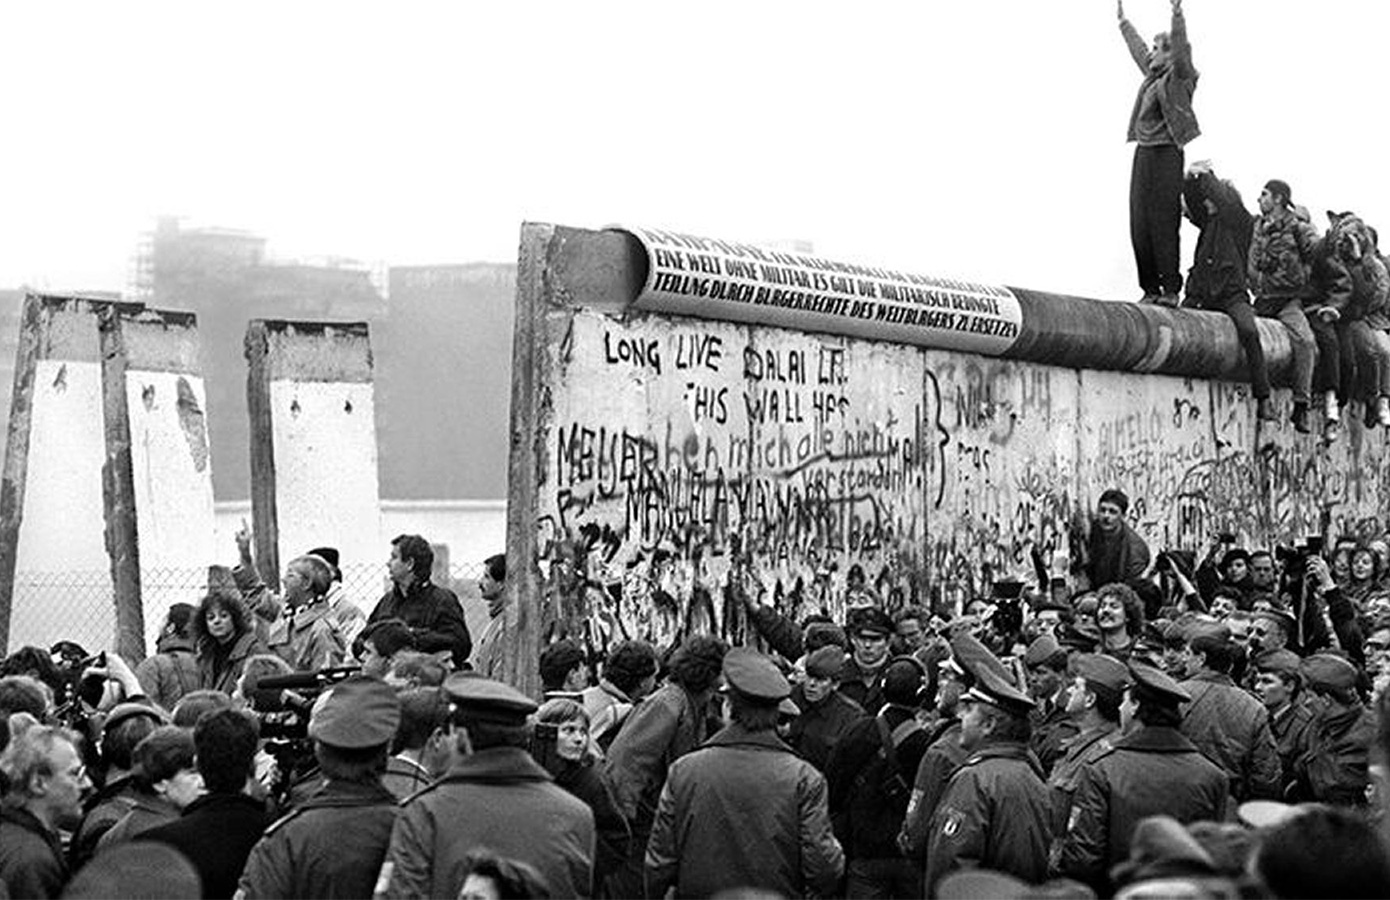 A chunk of the Berlin Wall is going under the hammer